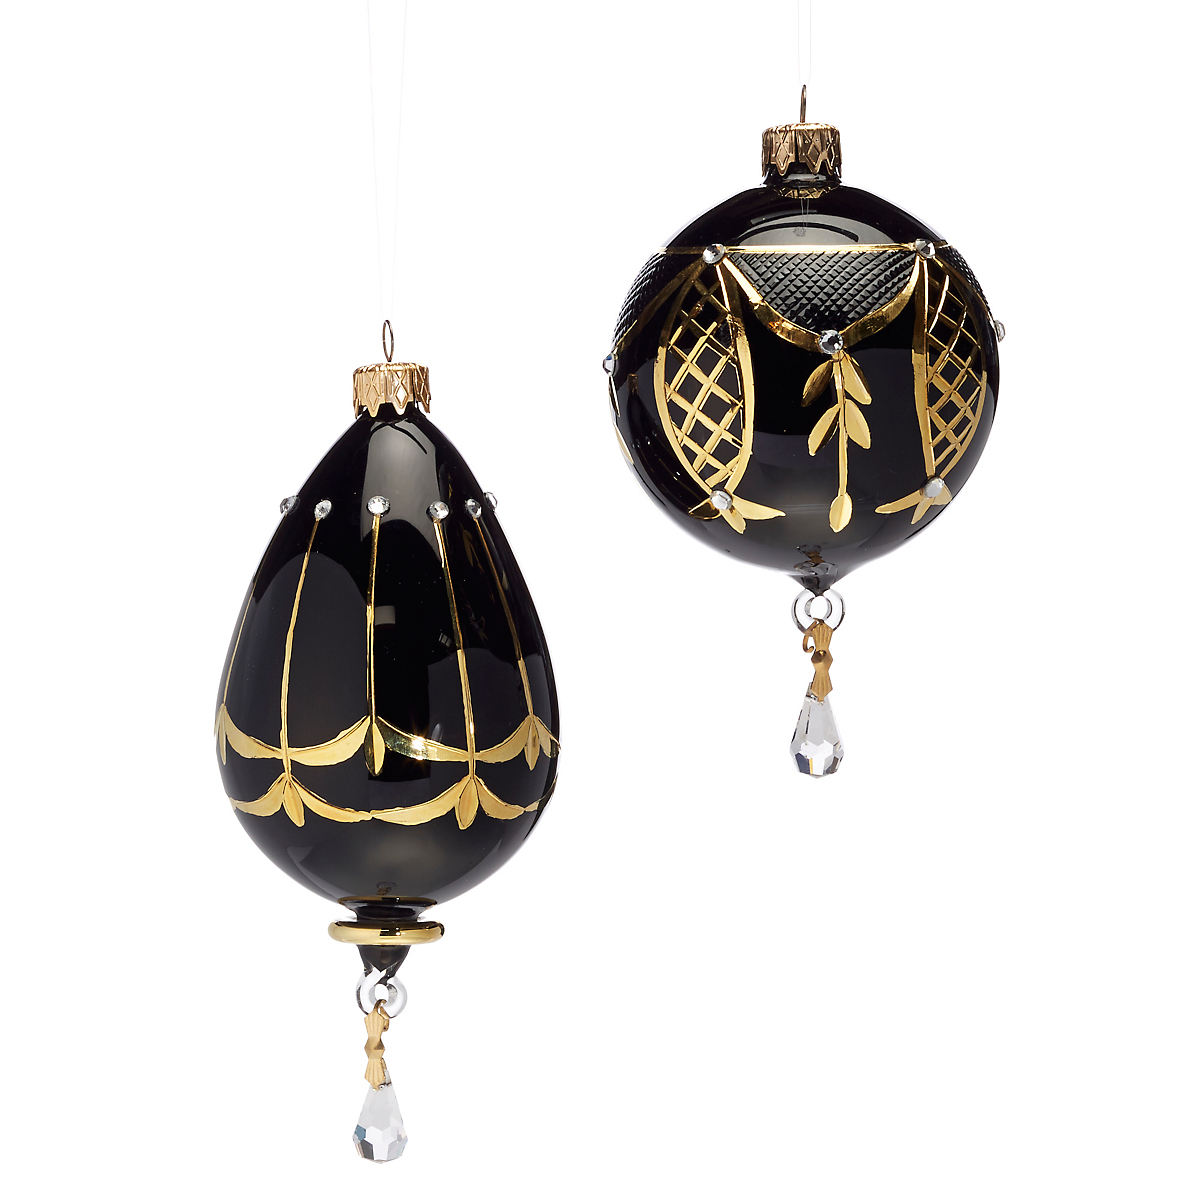 Gilded Glass Black & Gold Ornaments, Set Of 2